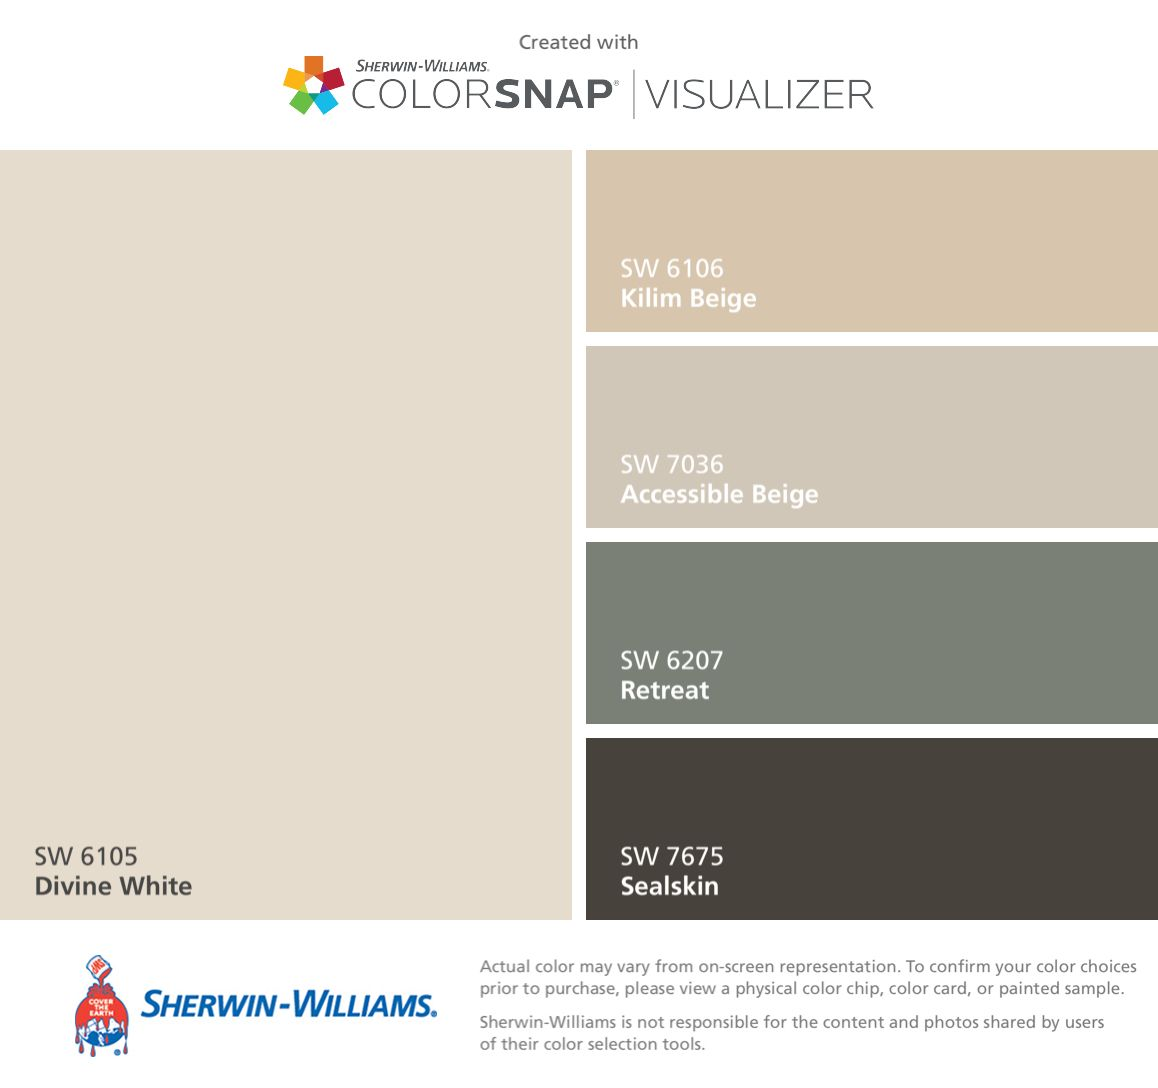 I found these colors with colorsnap visualizer for iphone by sherwin williams divine white sw 6105 kilim beige sw 6106 accessible beige sw 7036